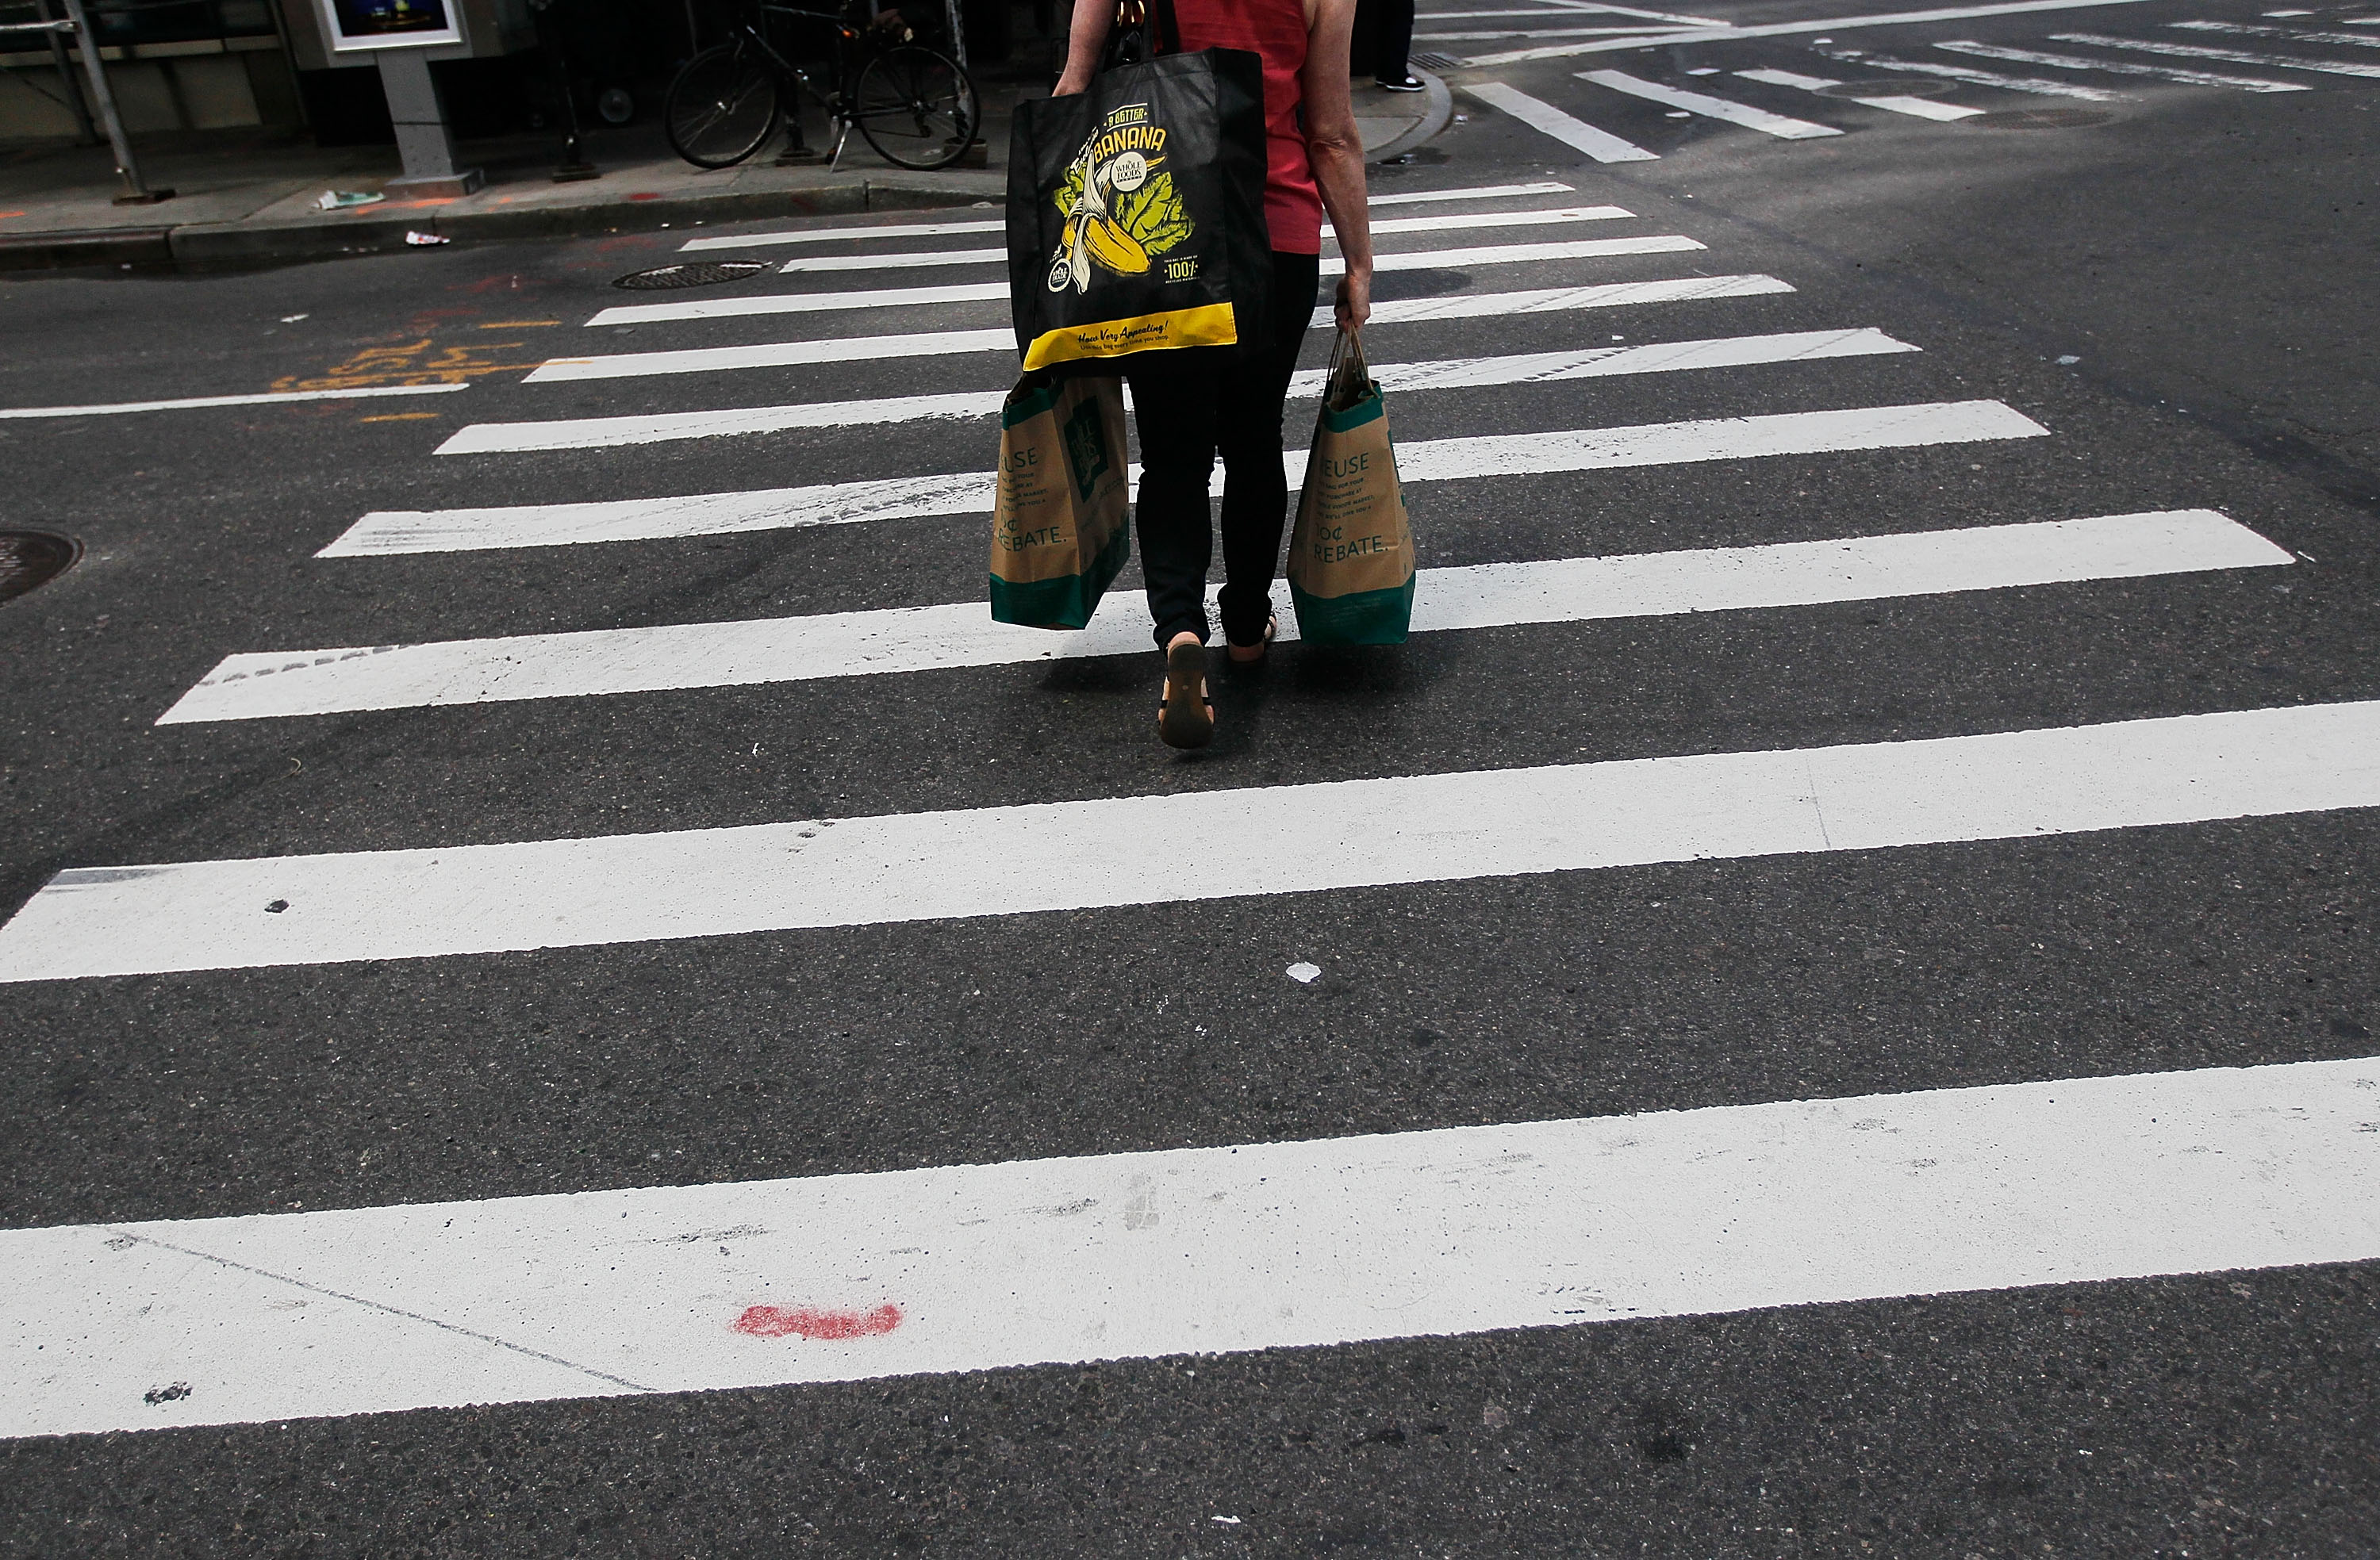 A woman with shopping bags traverses a crosswalk near Columbus Circle April 30, 2010 in New York, New York.